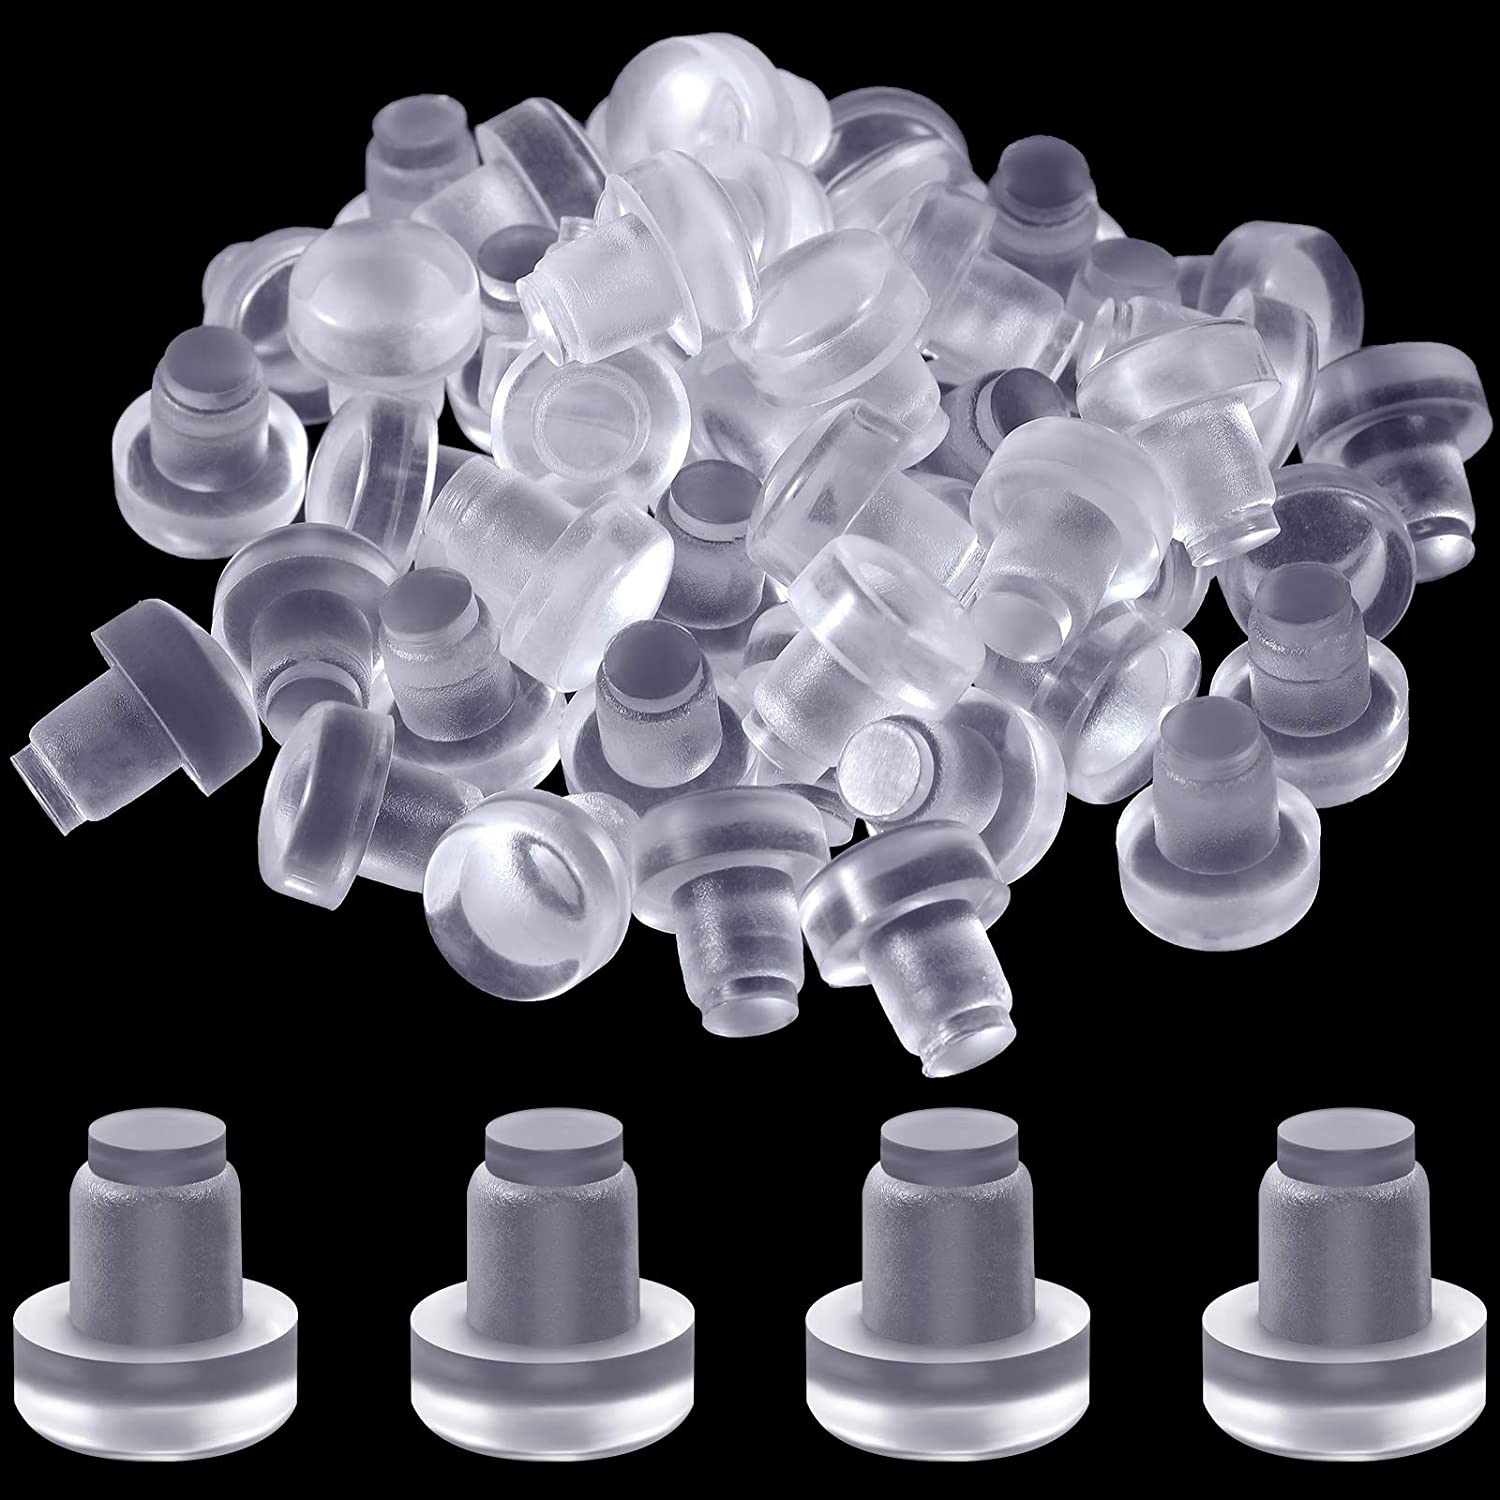 50 Pieces Glass Table Top Bumpers with Stem Furniture Clear Bumpers Pads Cabinet Door Rubber Bumpers Pads for Outdoor Patio Furniture Glass Table Tops with 1/4 Inch Hole